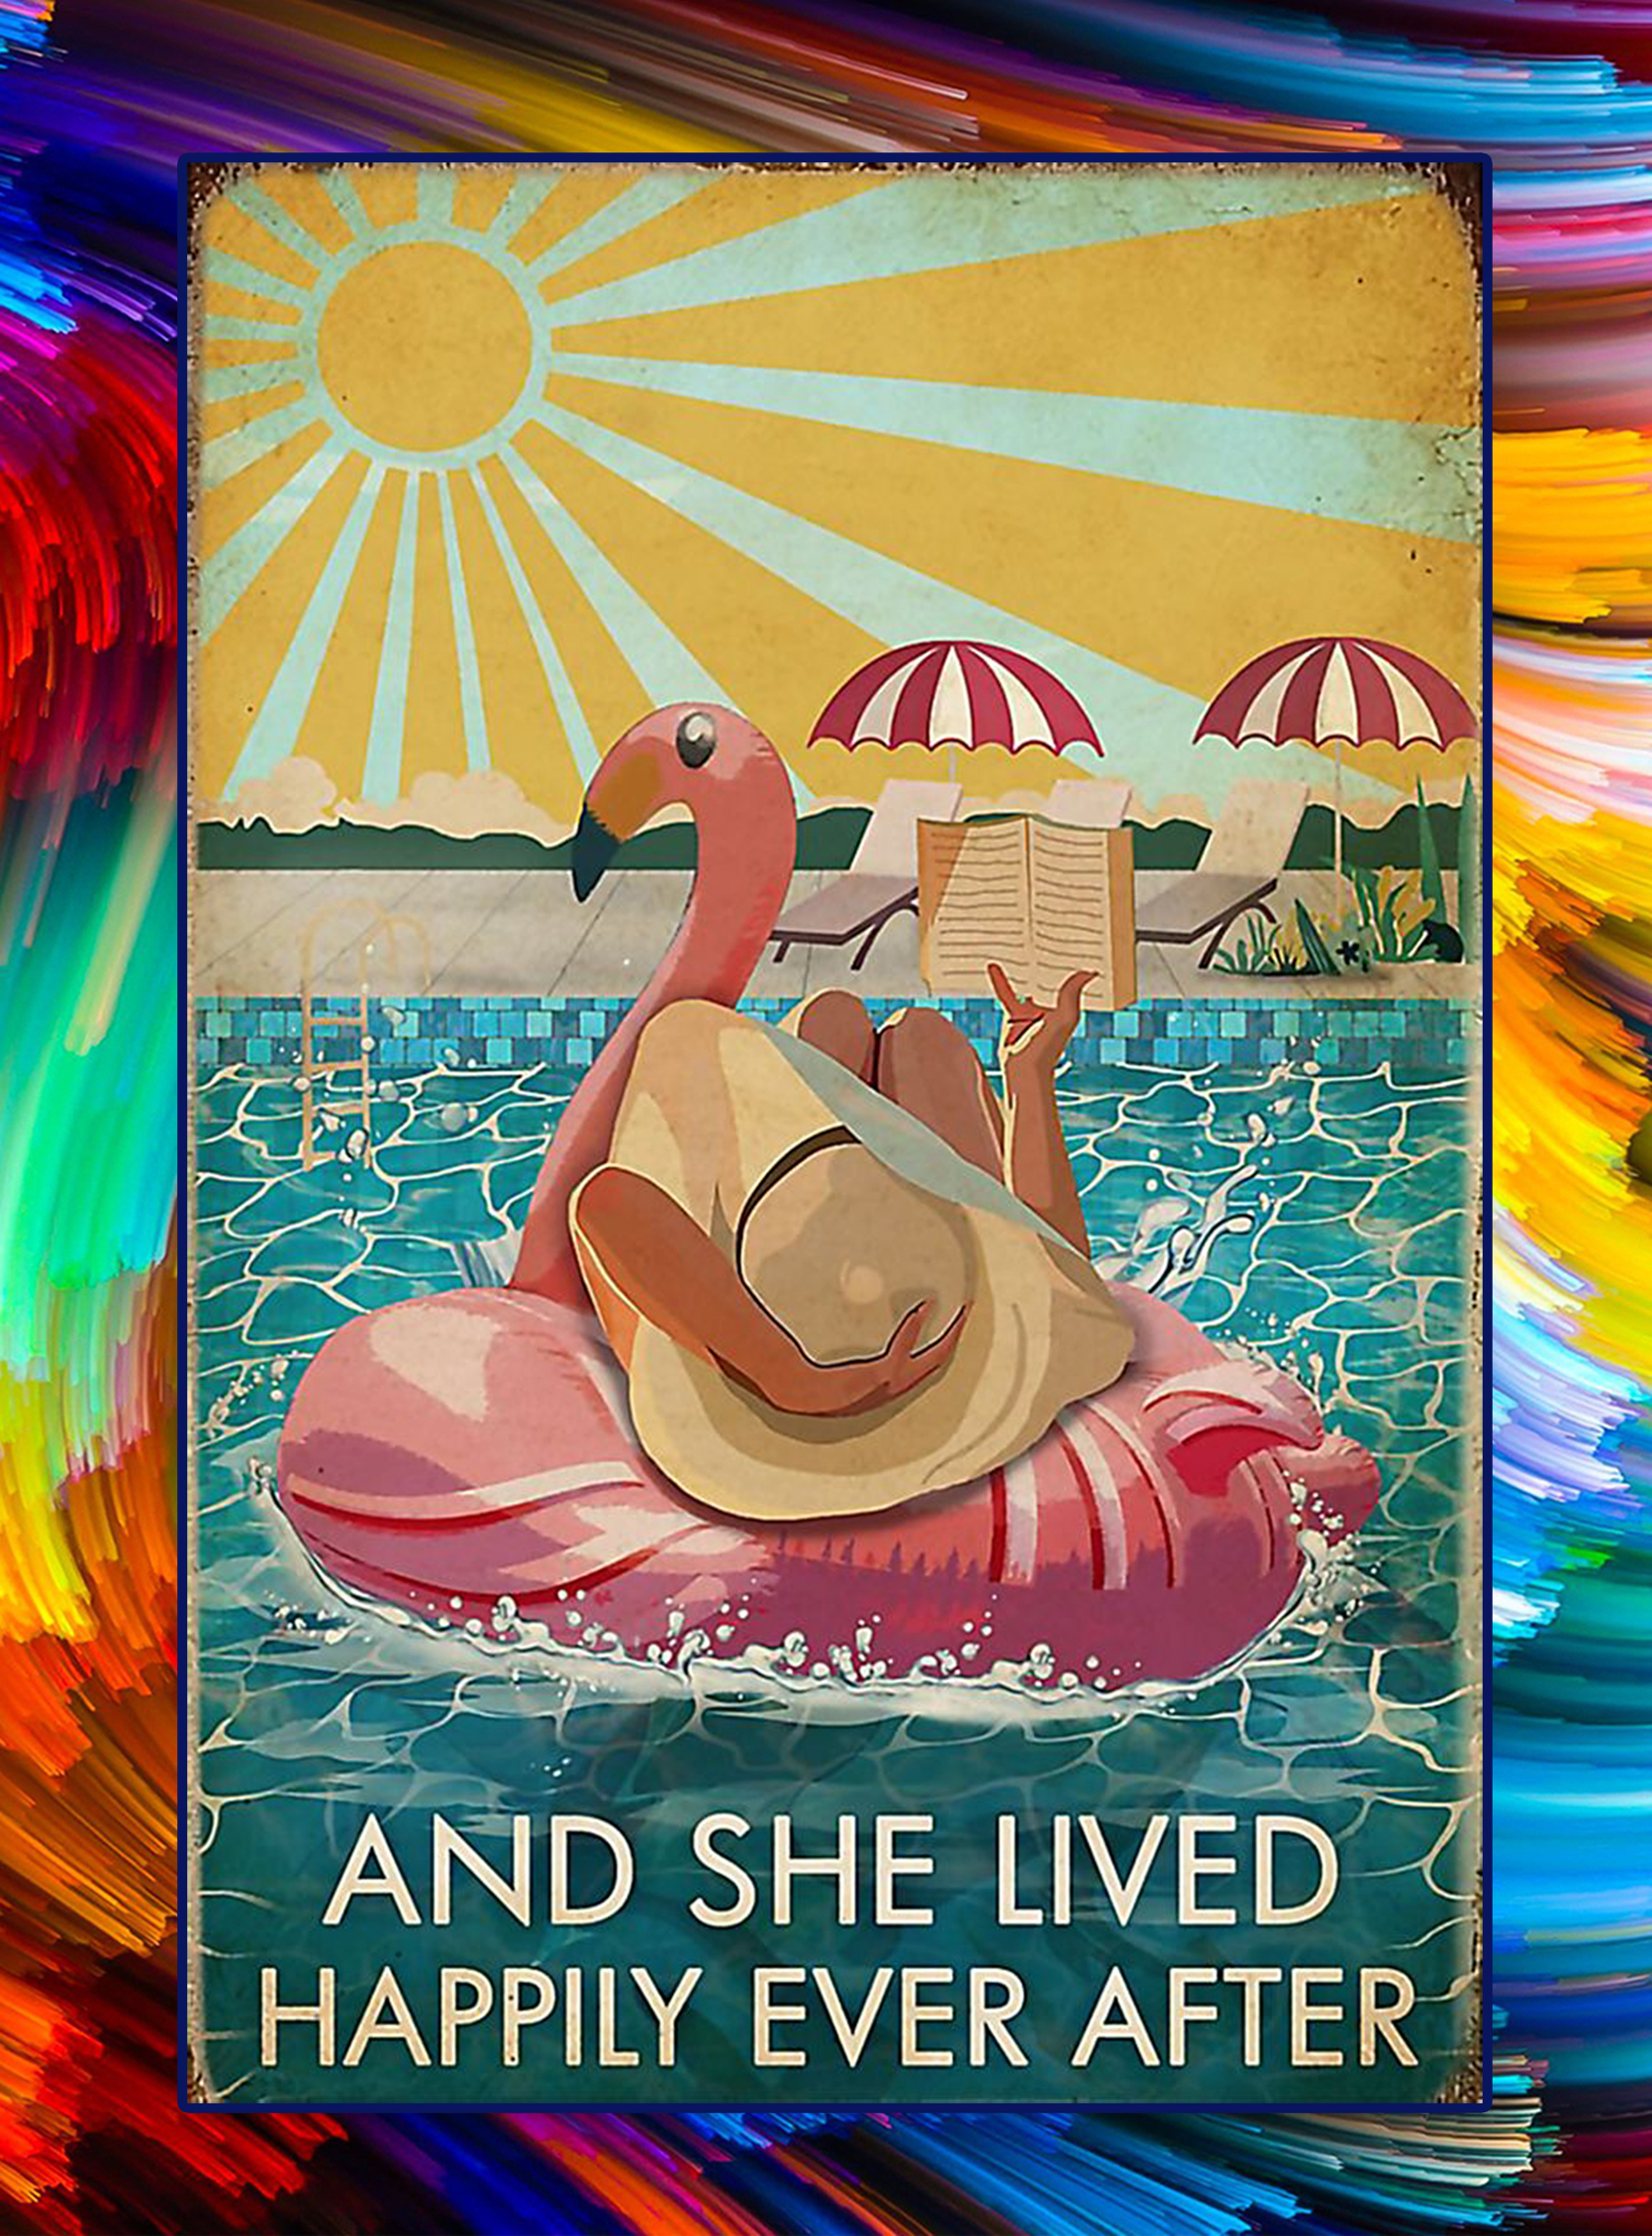 Flamingo book pool and she lived happily ever after poster - A1